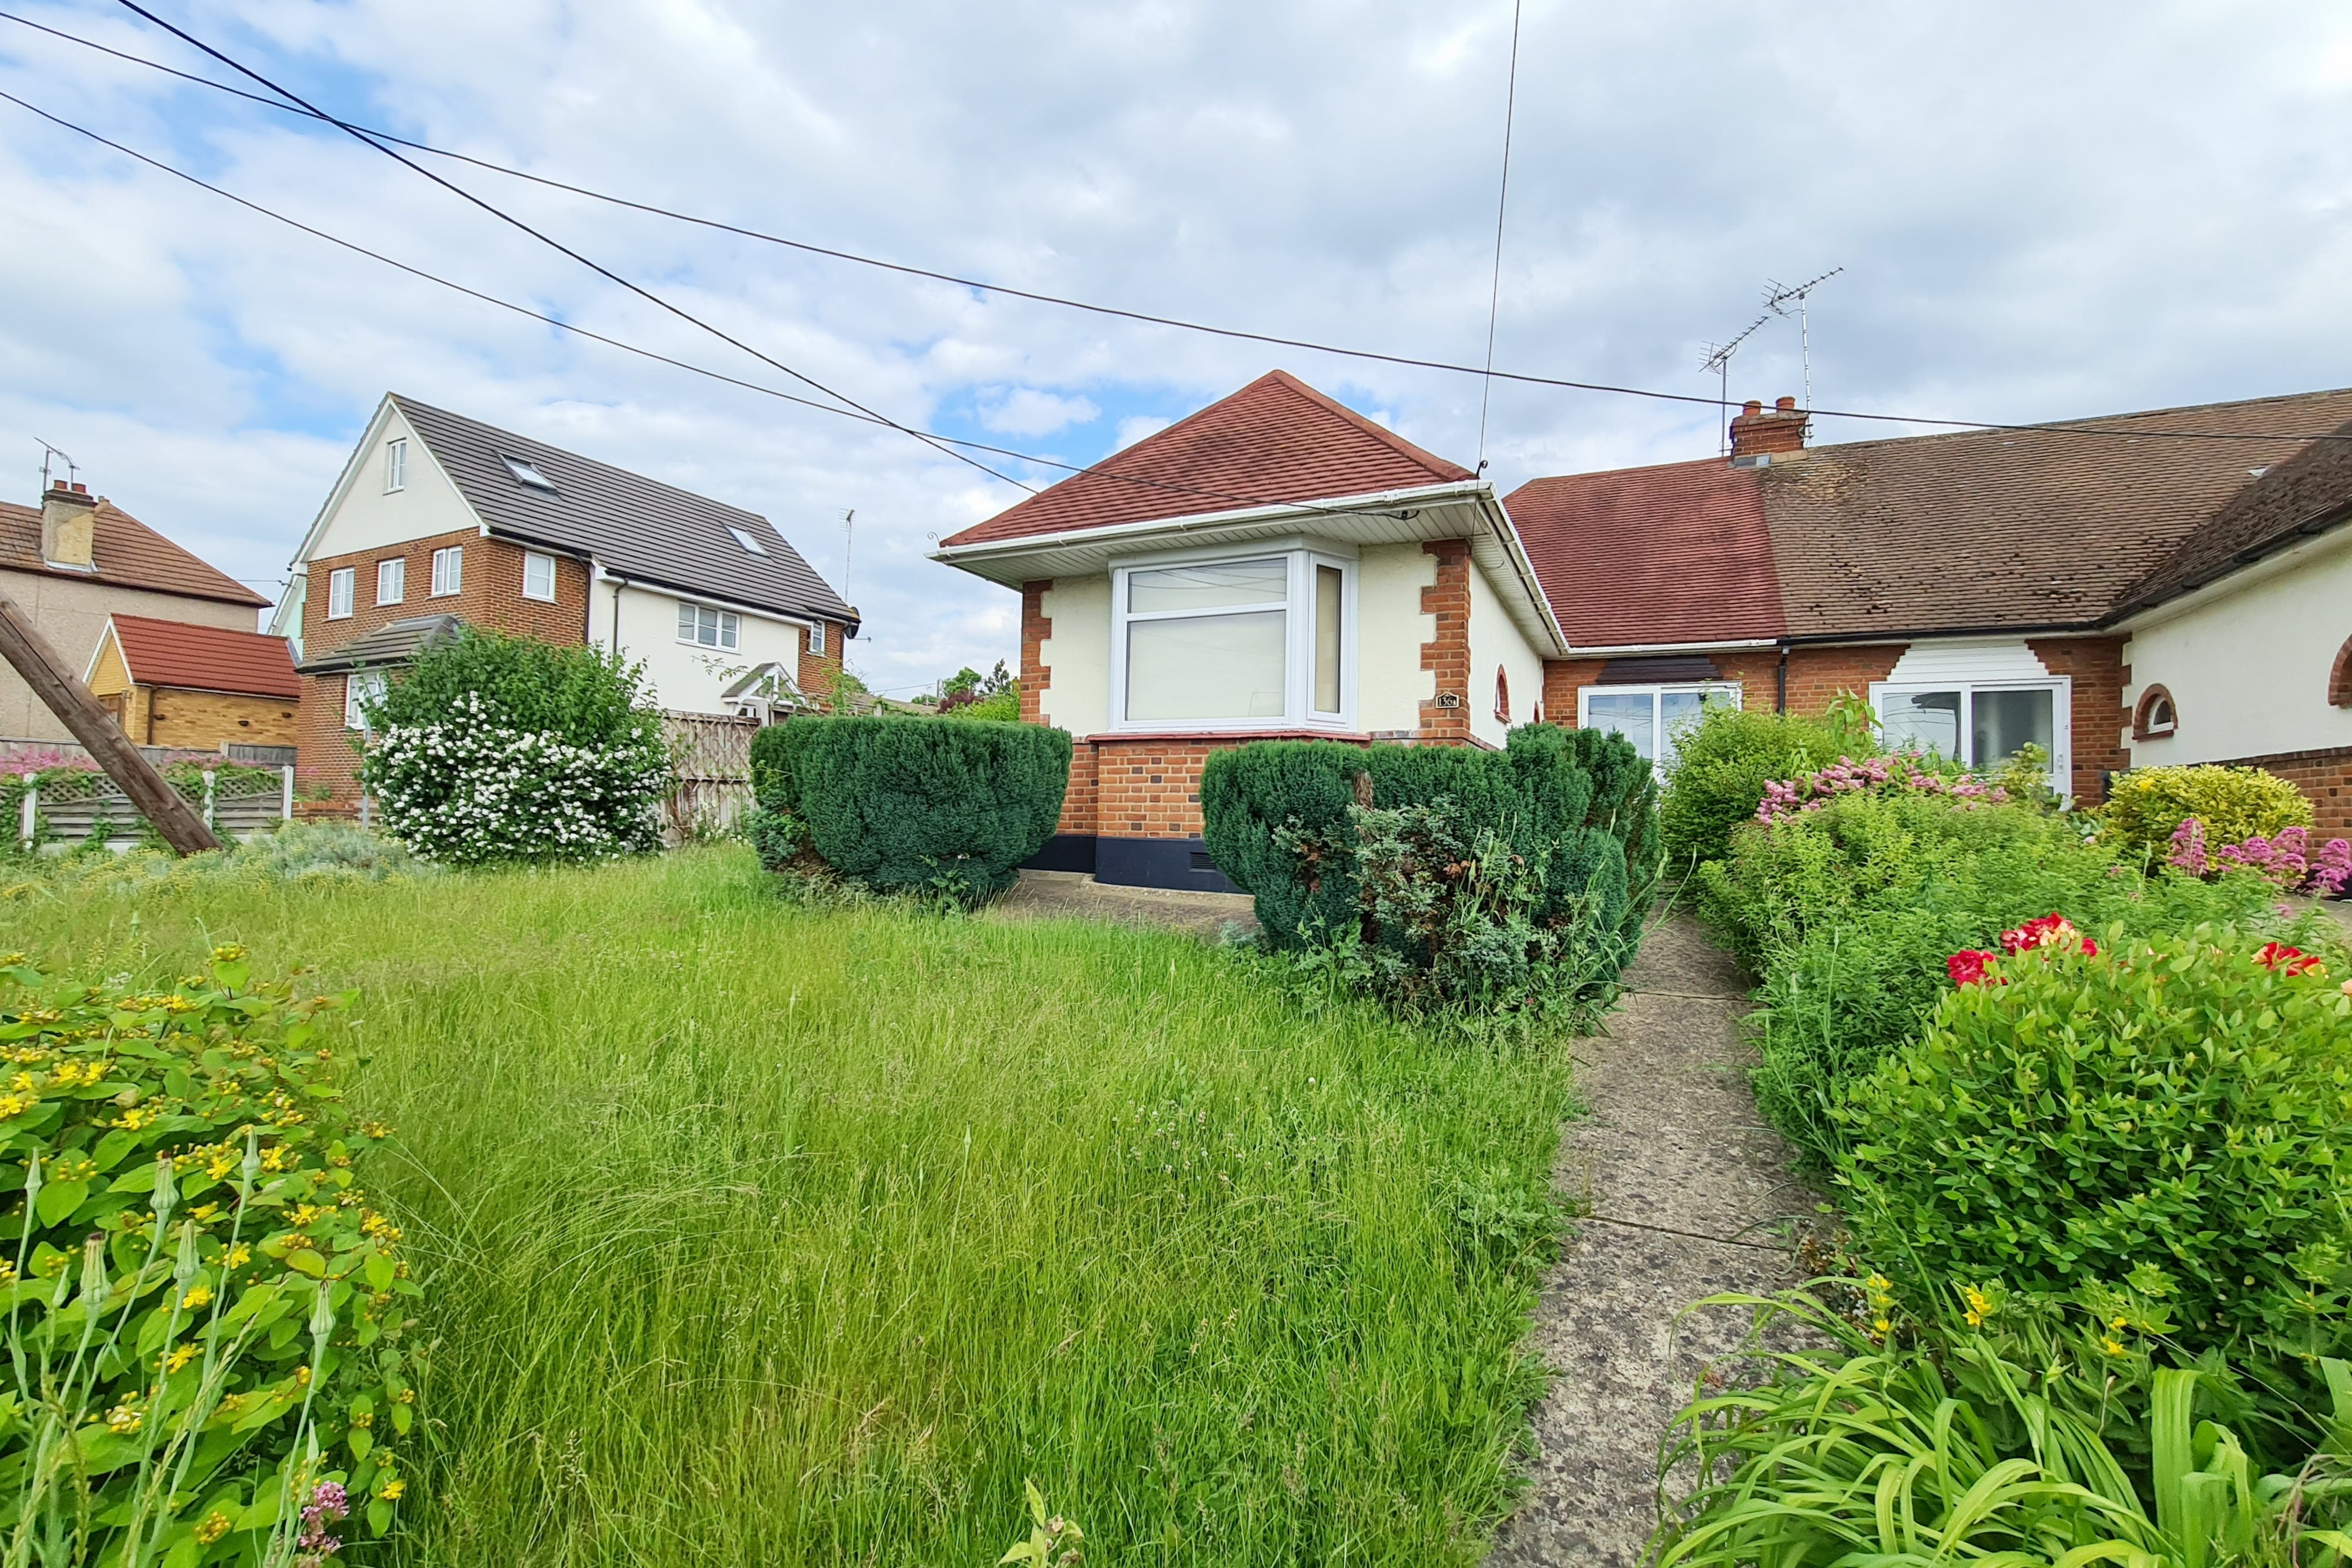 2 bed semi-detached bungalow for sale in Downhall Road, Rayleigh, SS6